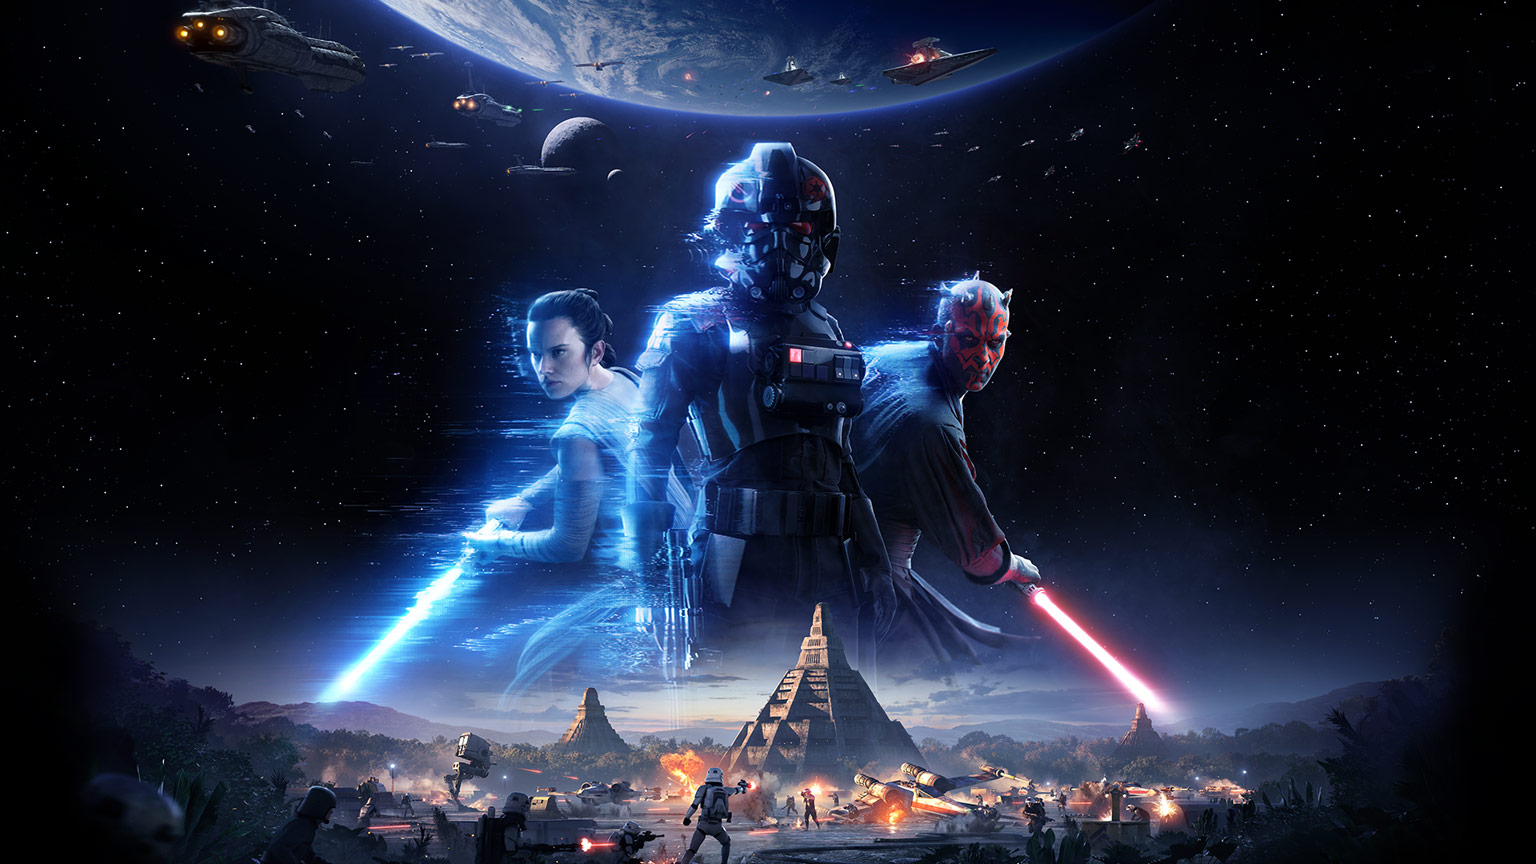 Battlefront II and More Classic Star Wars Games Arrive on EA Access